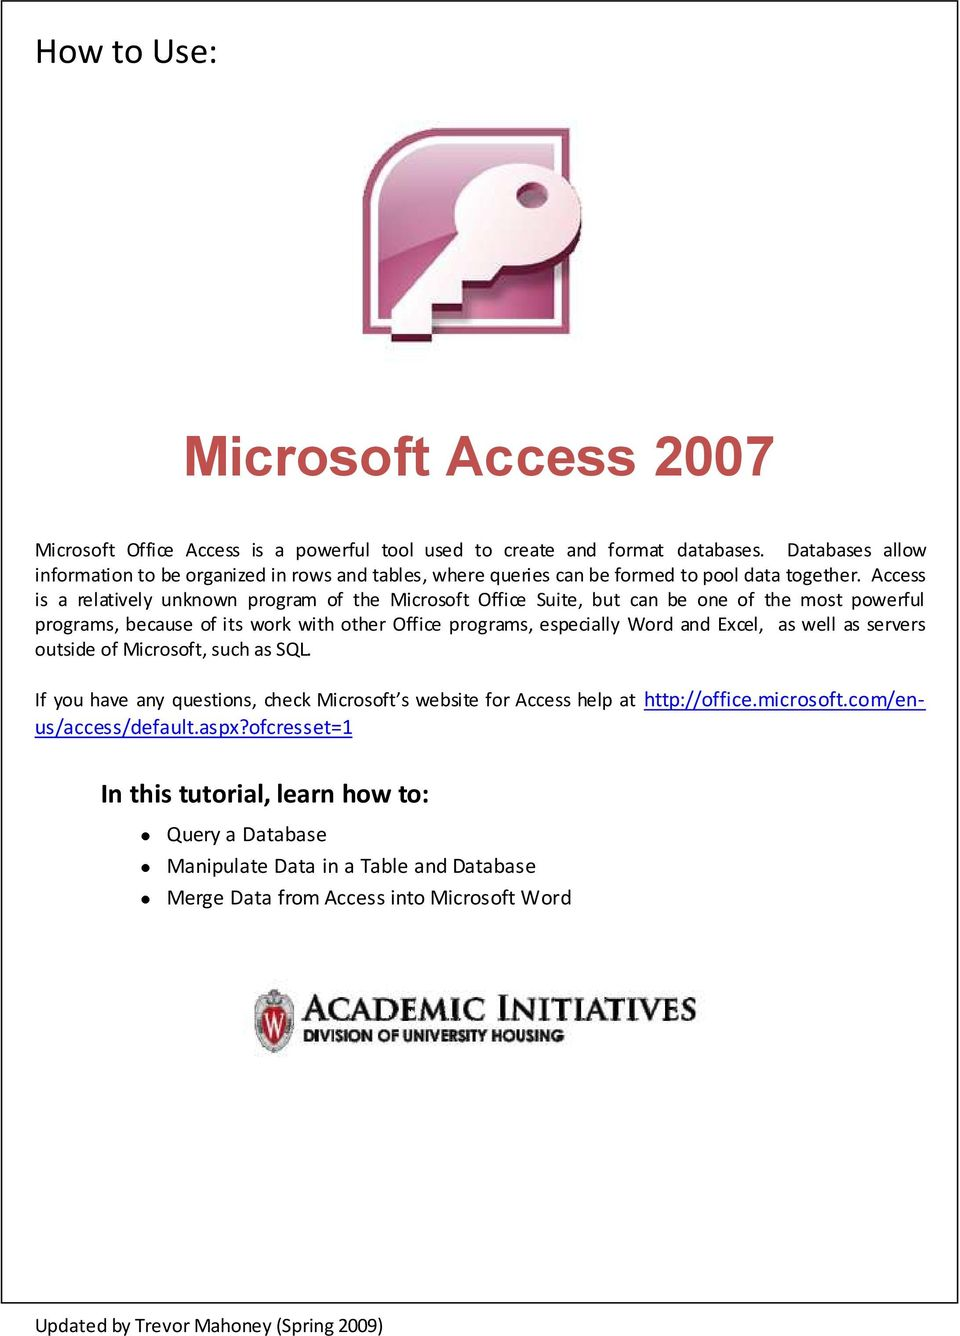 Access is a relatively unknown program of the Microsoft Office Suite, but can be one of the most powerful programs, because of its work with other Office programs, especially Word and Excel, as